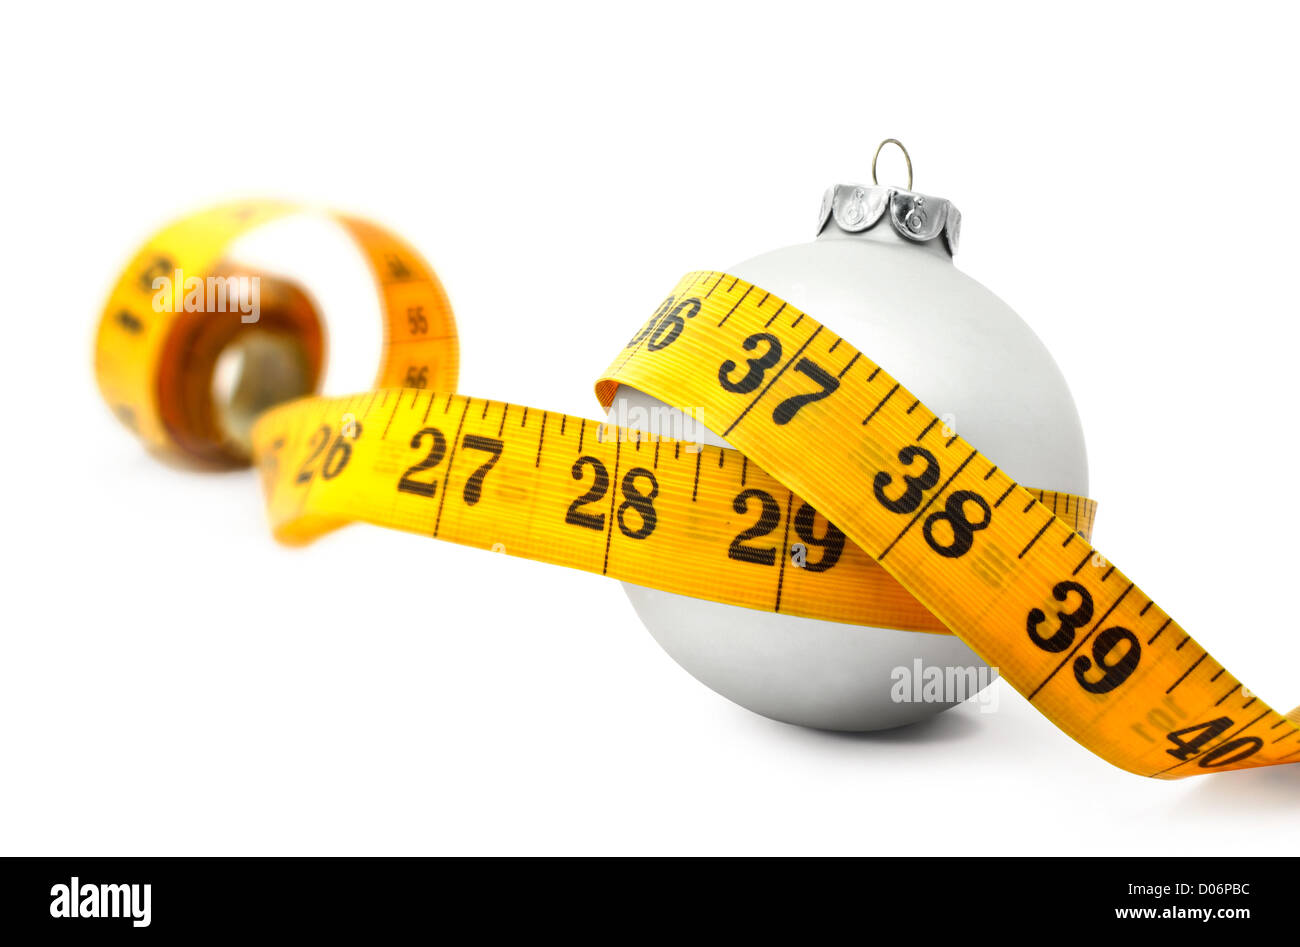 Tape measure around a bauble concept symbolizing Christmas weight gain from eating too much food. - Stock Image